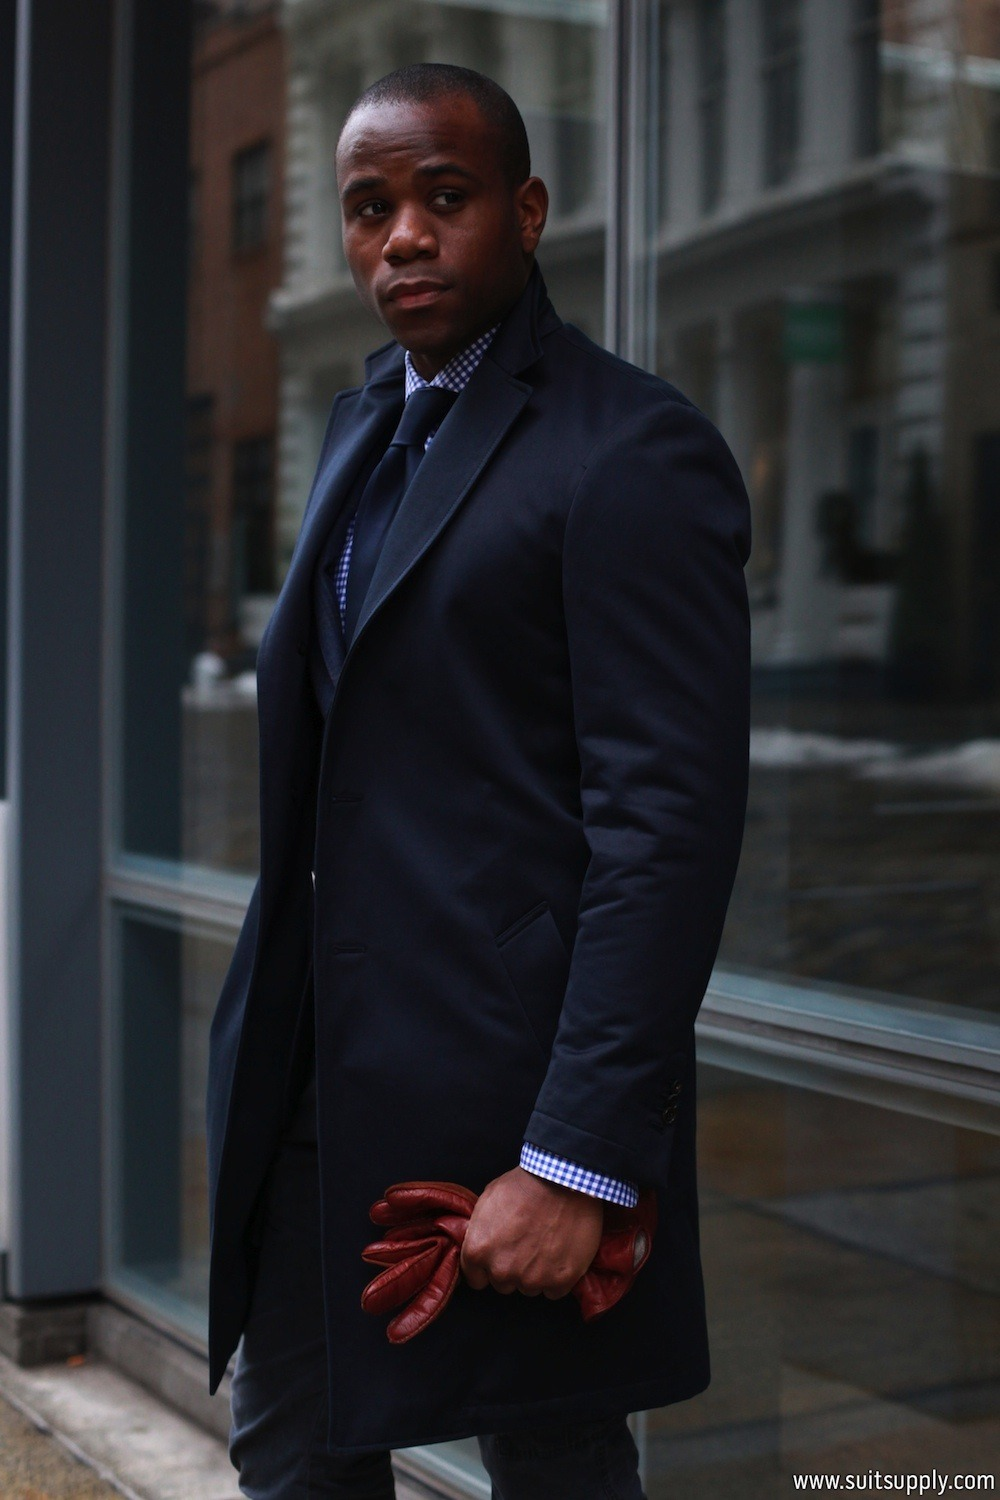 menofhabit:  suitsupply:  Rain Check Jumping from one meeting to the next without a proper raincoat can be tough on your tailored clothing when the weather isn't on your side. It's for those days that we designed this slim cotton jacket that you can easily throw on over your suit when you're running out the door.  Martel.